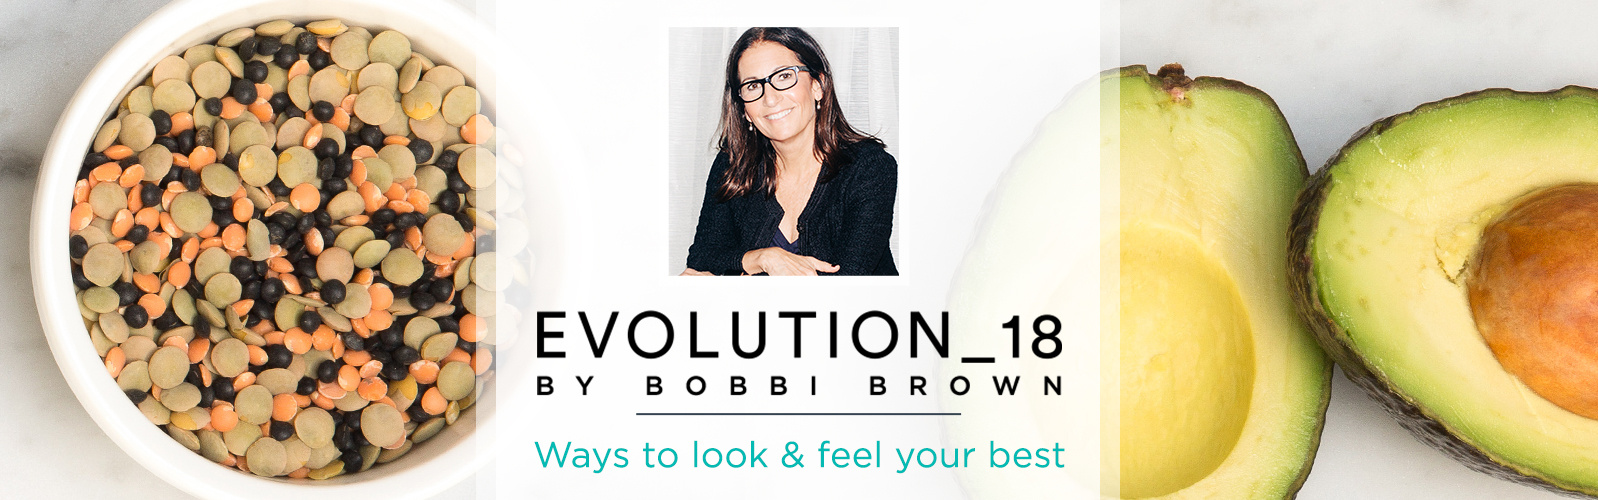 EVOLUTION_18 by Bobbi Brown. Ways to look & feel your best